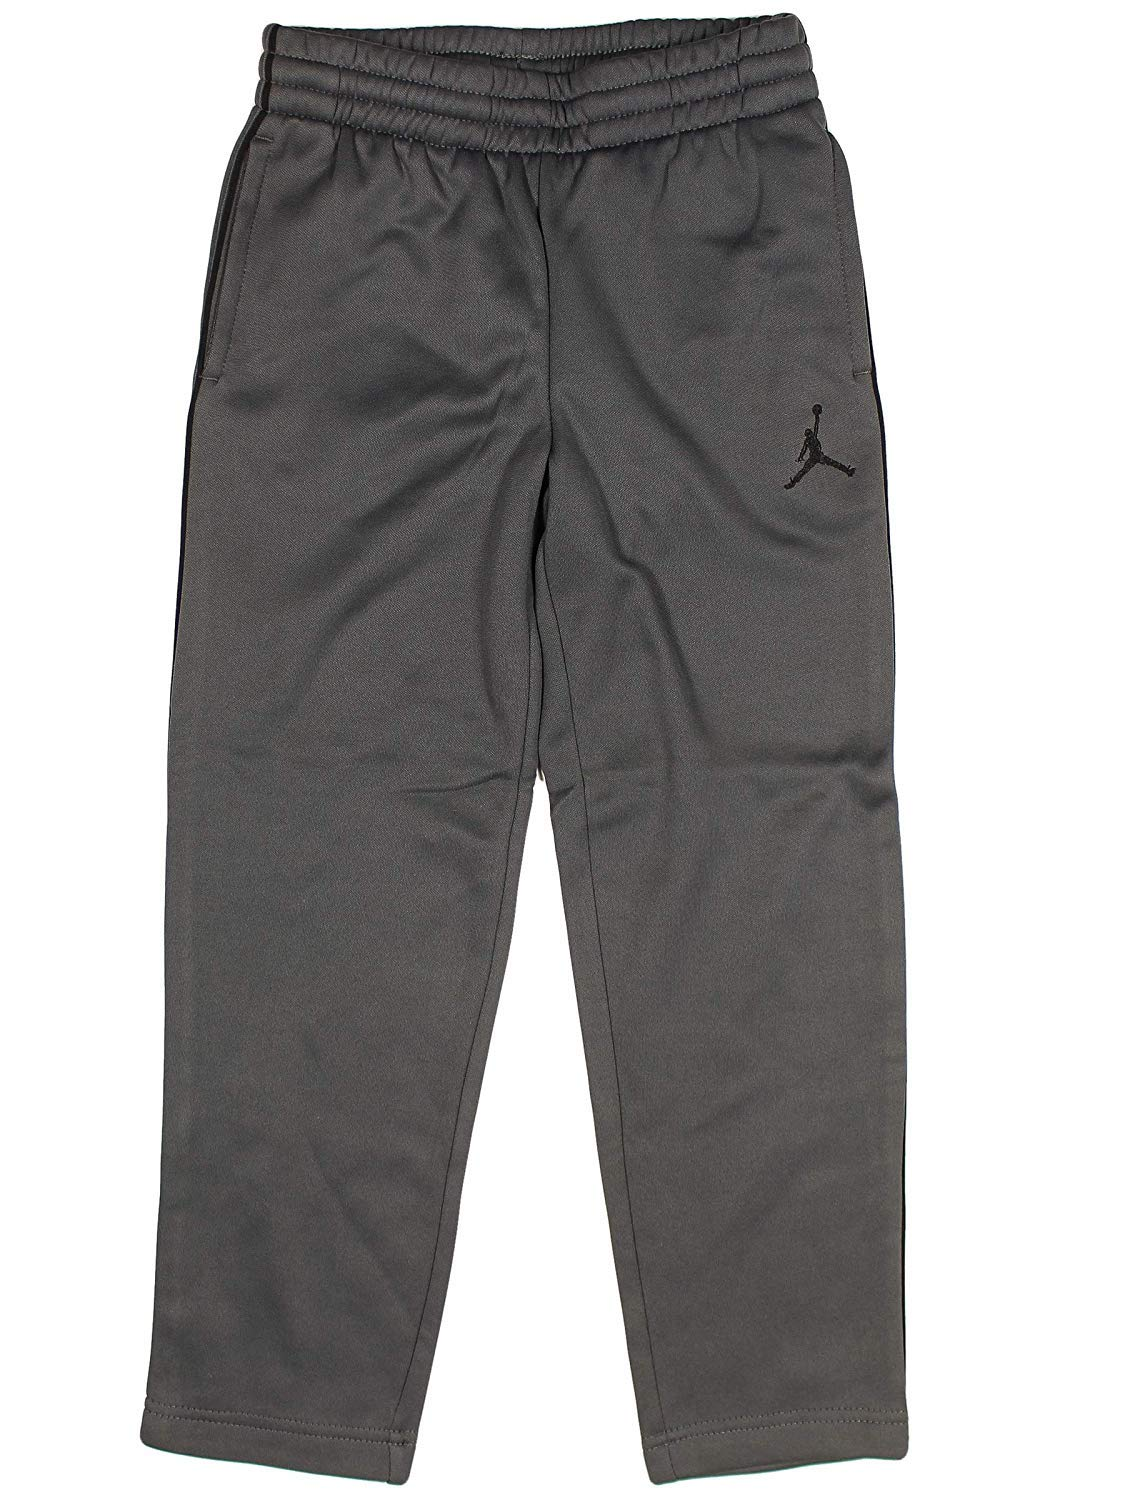 0969f6d8a8e Galleon - NIKE Boys' Youth Air Jordan Track Pants (DK Grey/Black, 5)